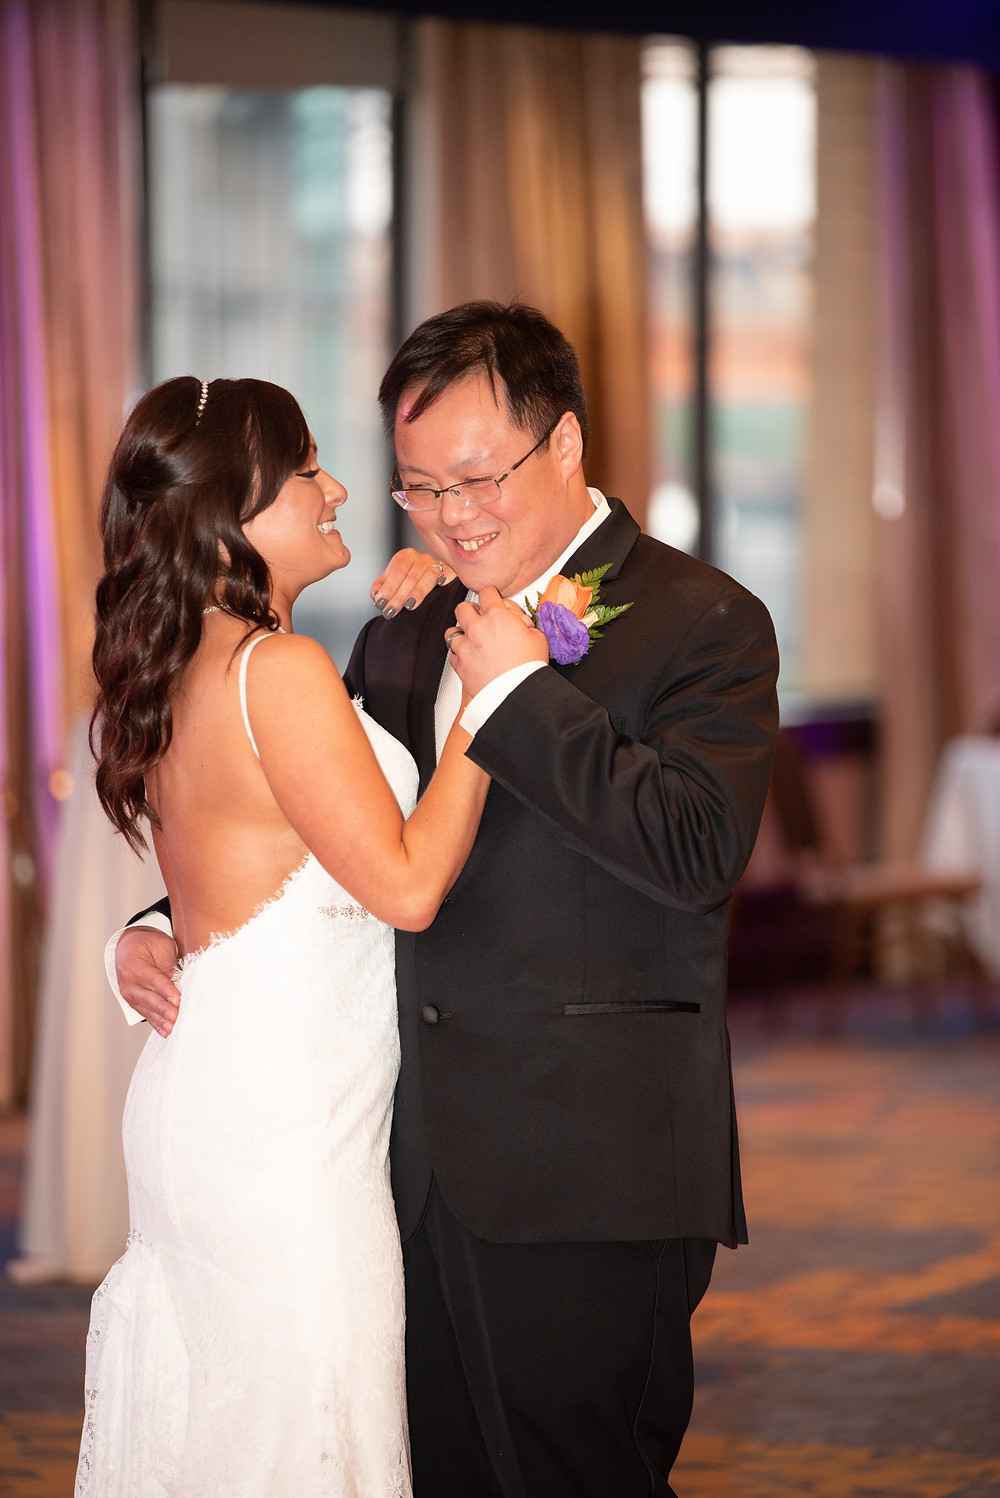 First dance as husband and wife in Pittsburgh, PA